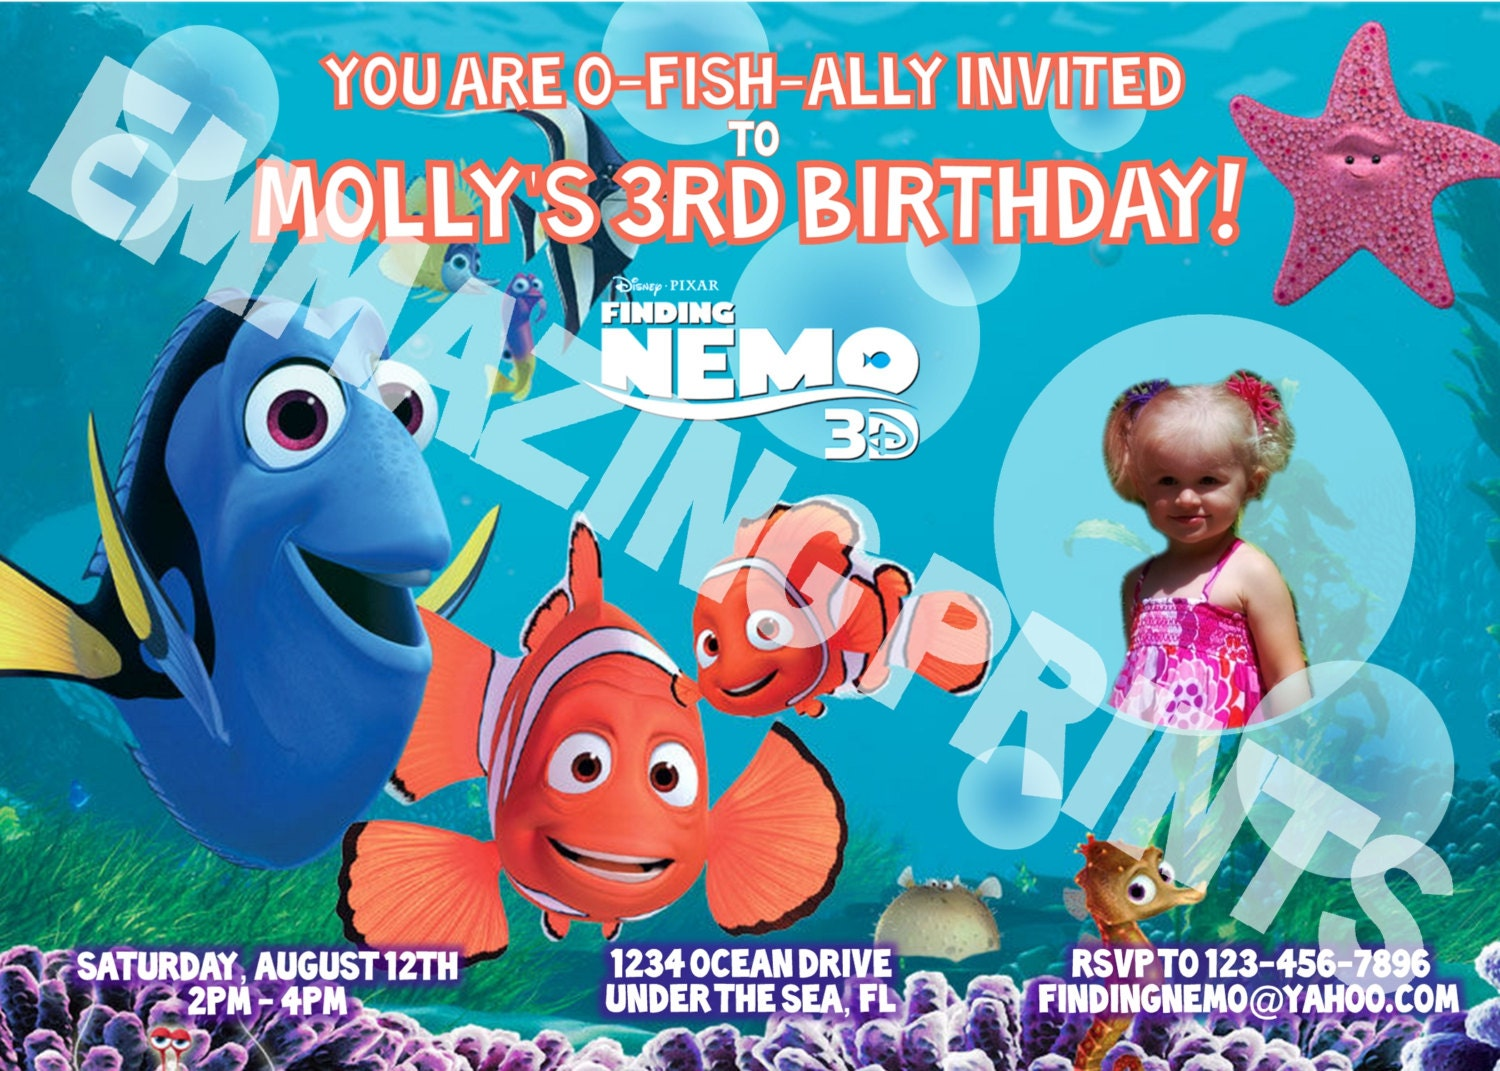 Finding Nemo Birthday Invitations could be nice ideas for your invitation template